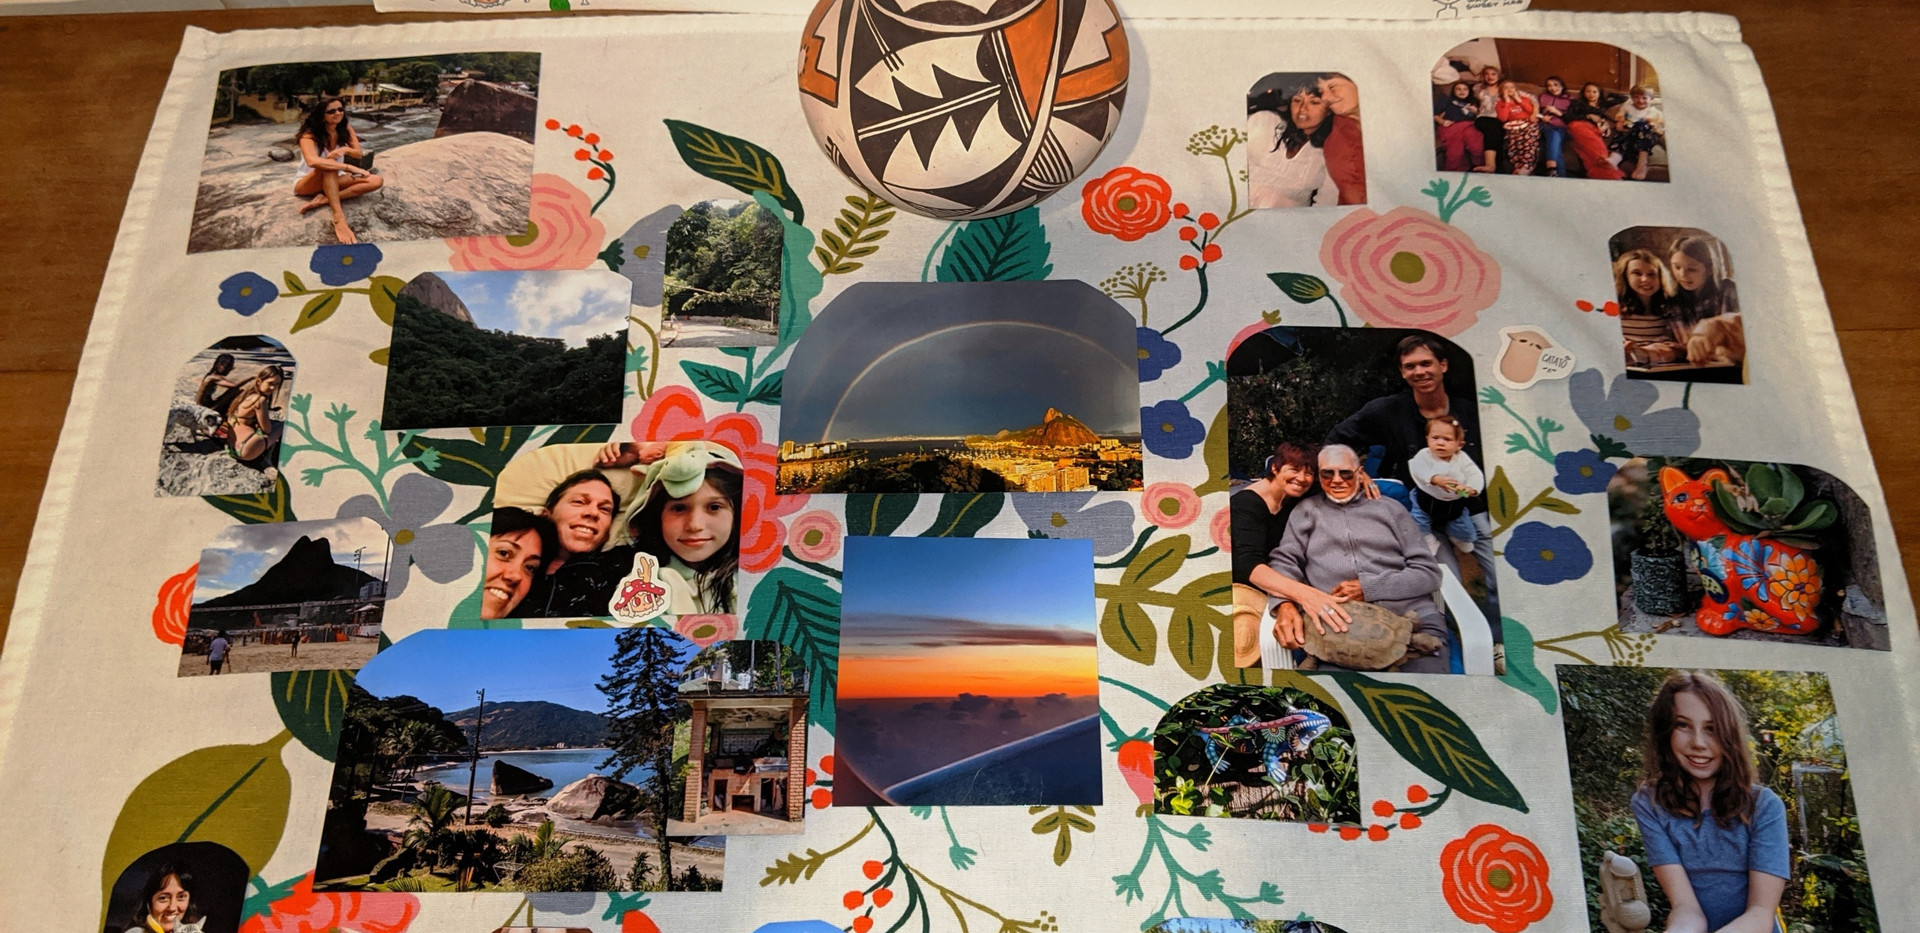 Collage by Tim, Dada, and Carolina Hill from the Brazil family branch